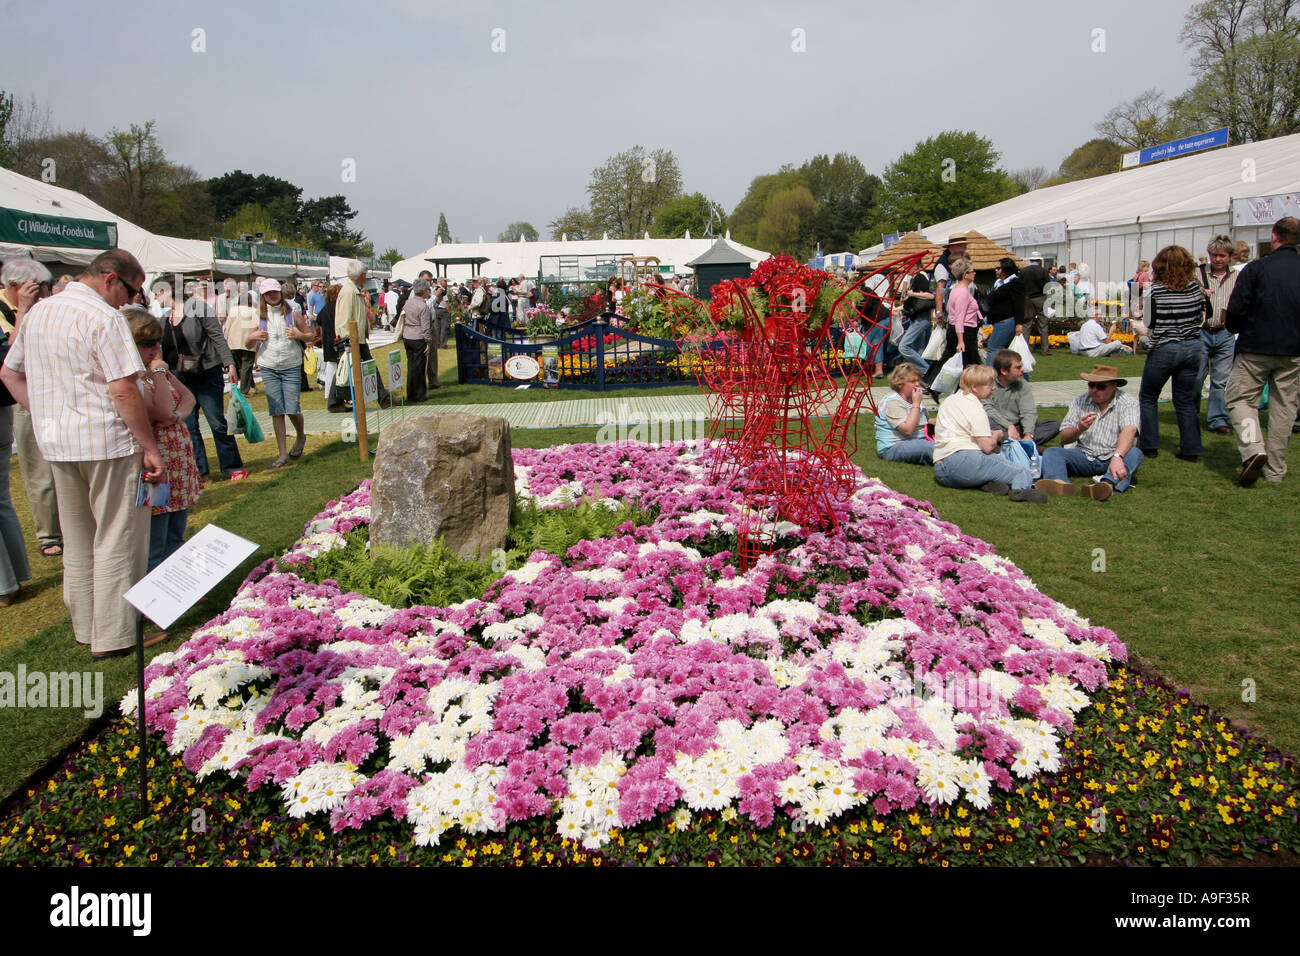 Royal horticultural society spring flower show bute park cardiff stock photo royalty free image - Royal flower show ...